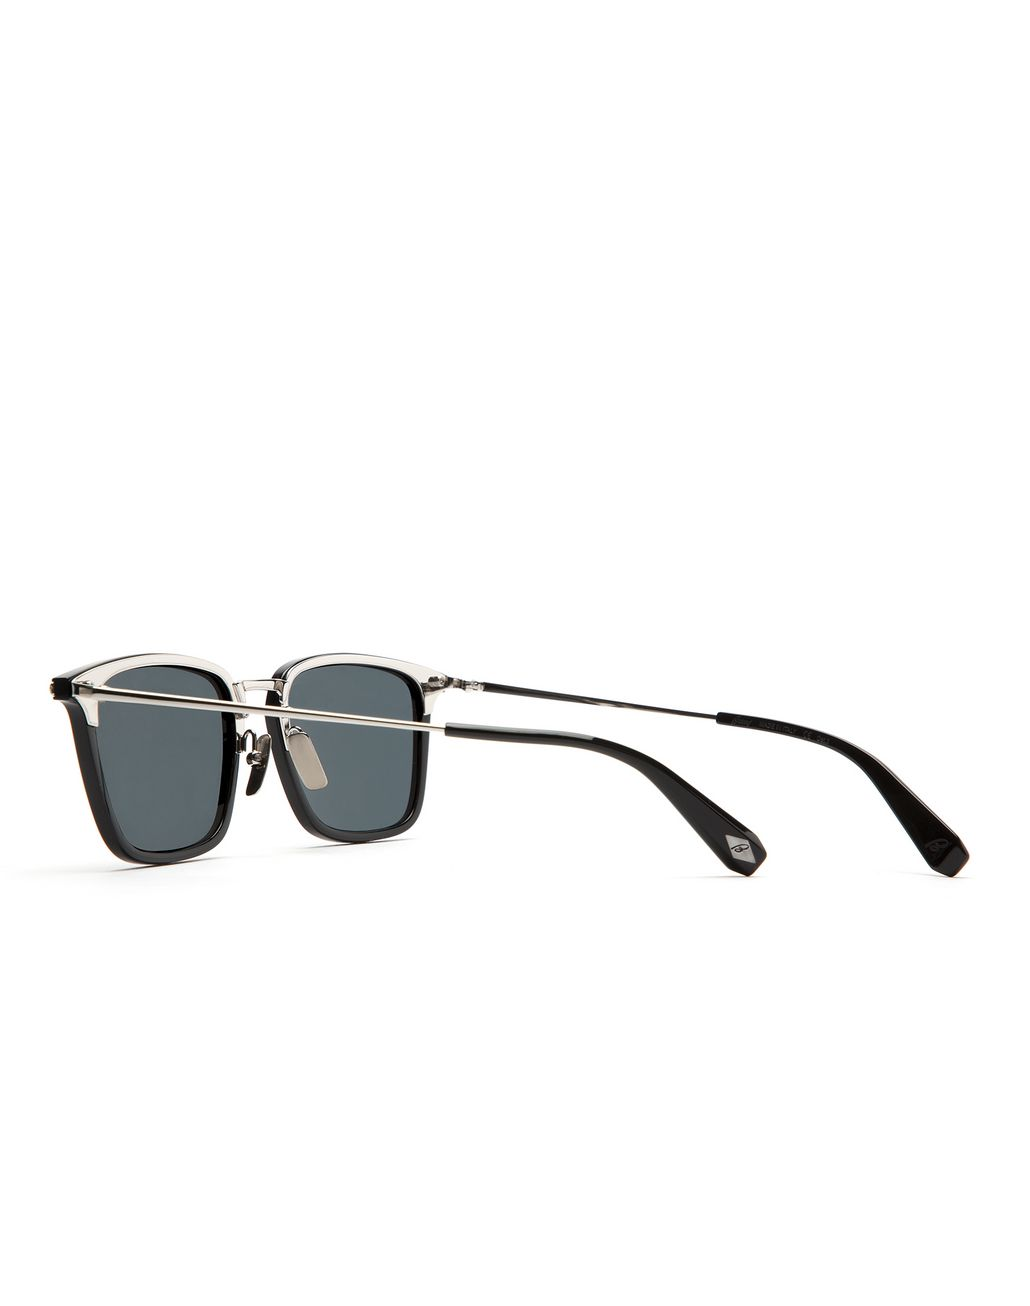 BRIONI Shiny Black Squared Sunglasses with Grey Lenses  Sunglasses [*** pickupInStoreShippingNotGuaranteed_info ***] d